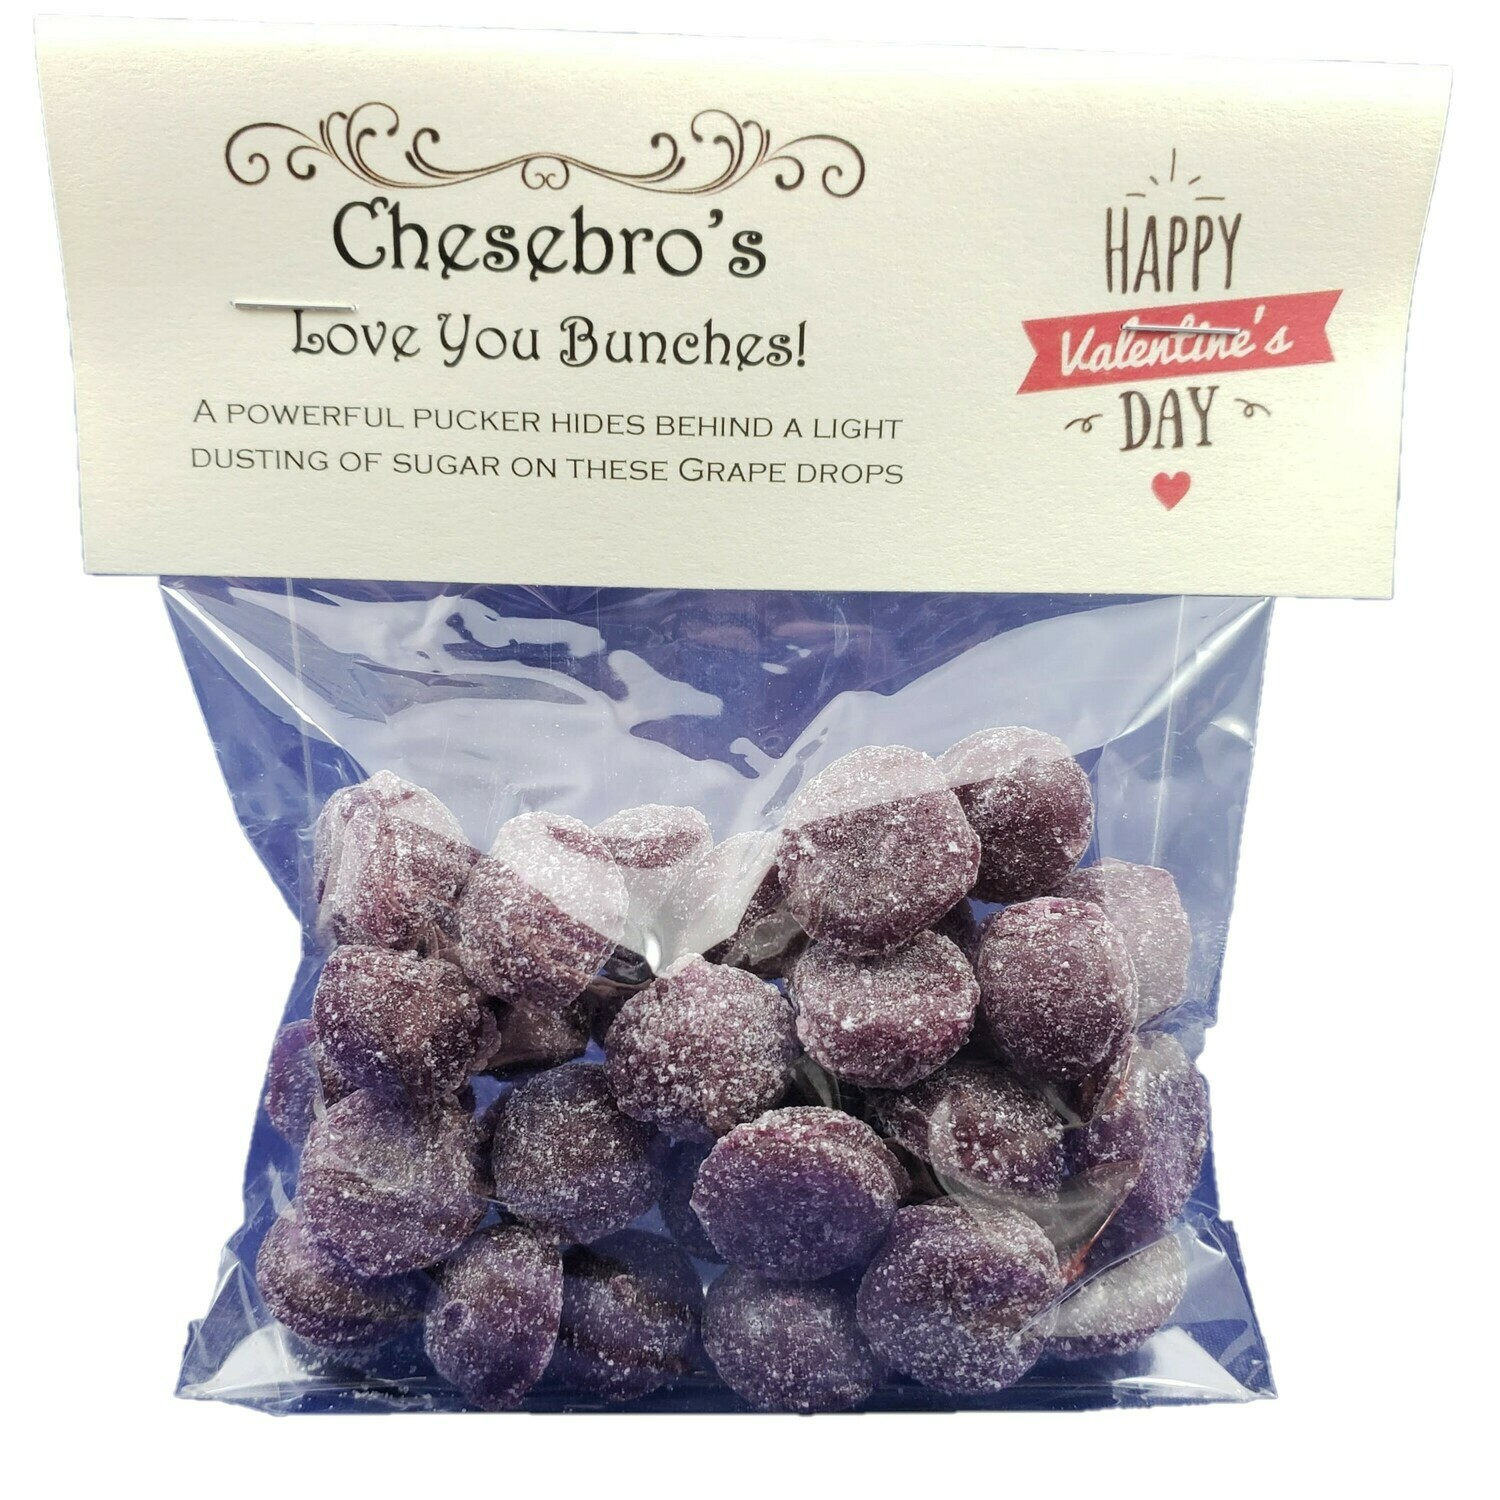 I Love You Bunches! Sour Grape Hard Candy Drops